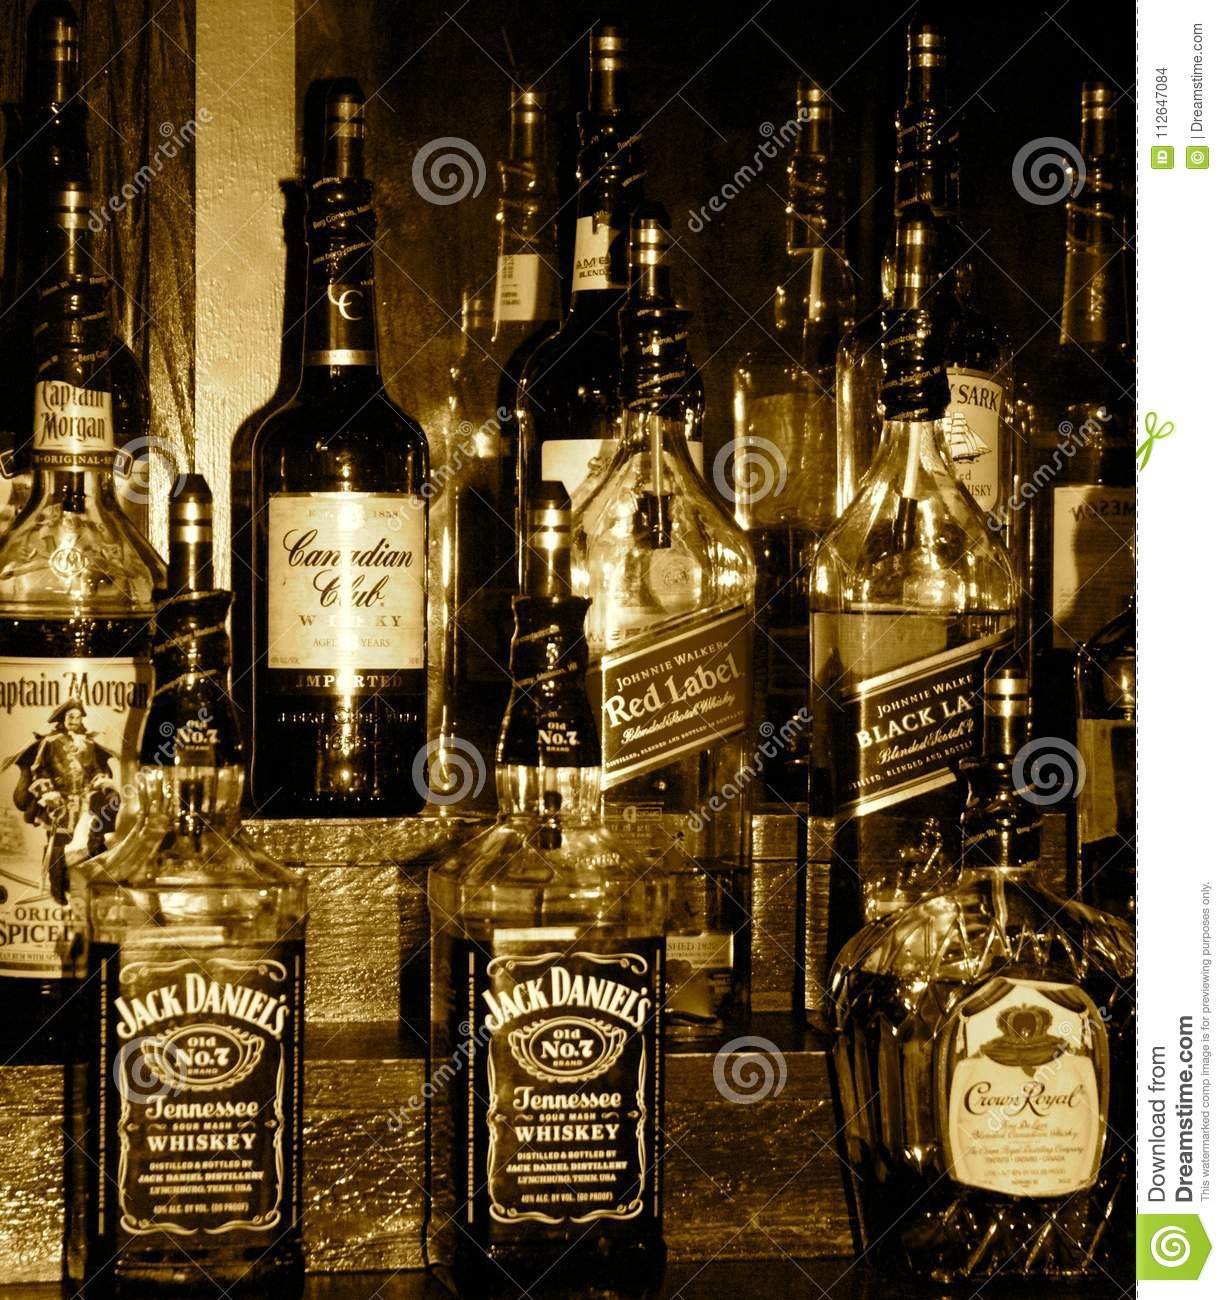 Whiskey Set Up Editorial Stock Image Image Of Morgan 112647084